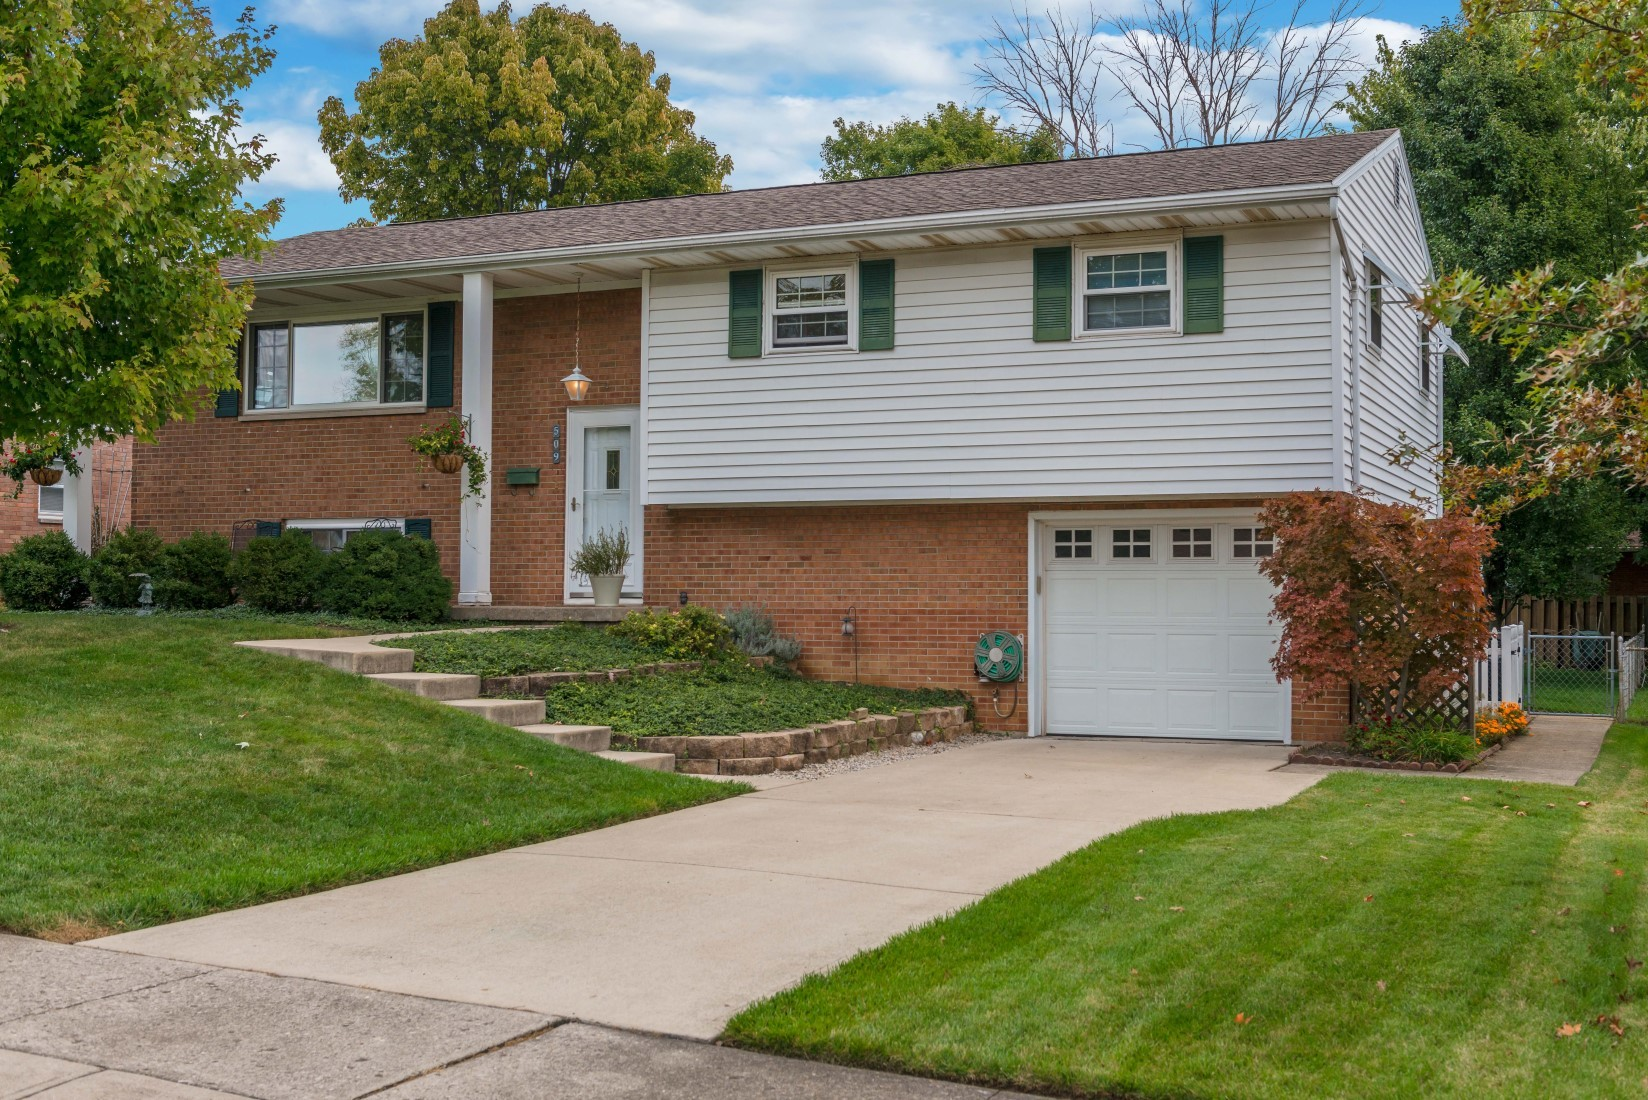 Home For Sale 509 Regent Drive Middletown Ohio